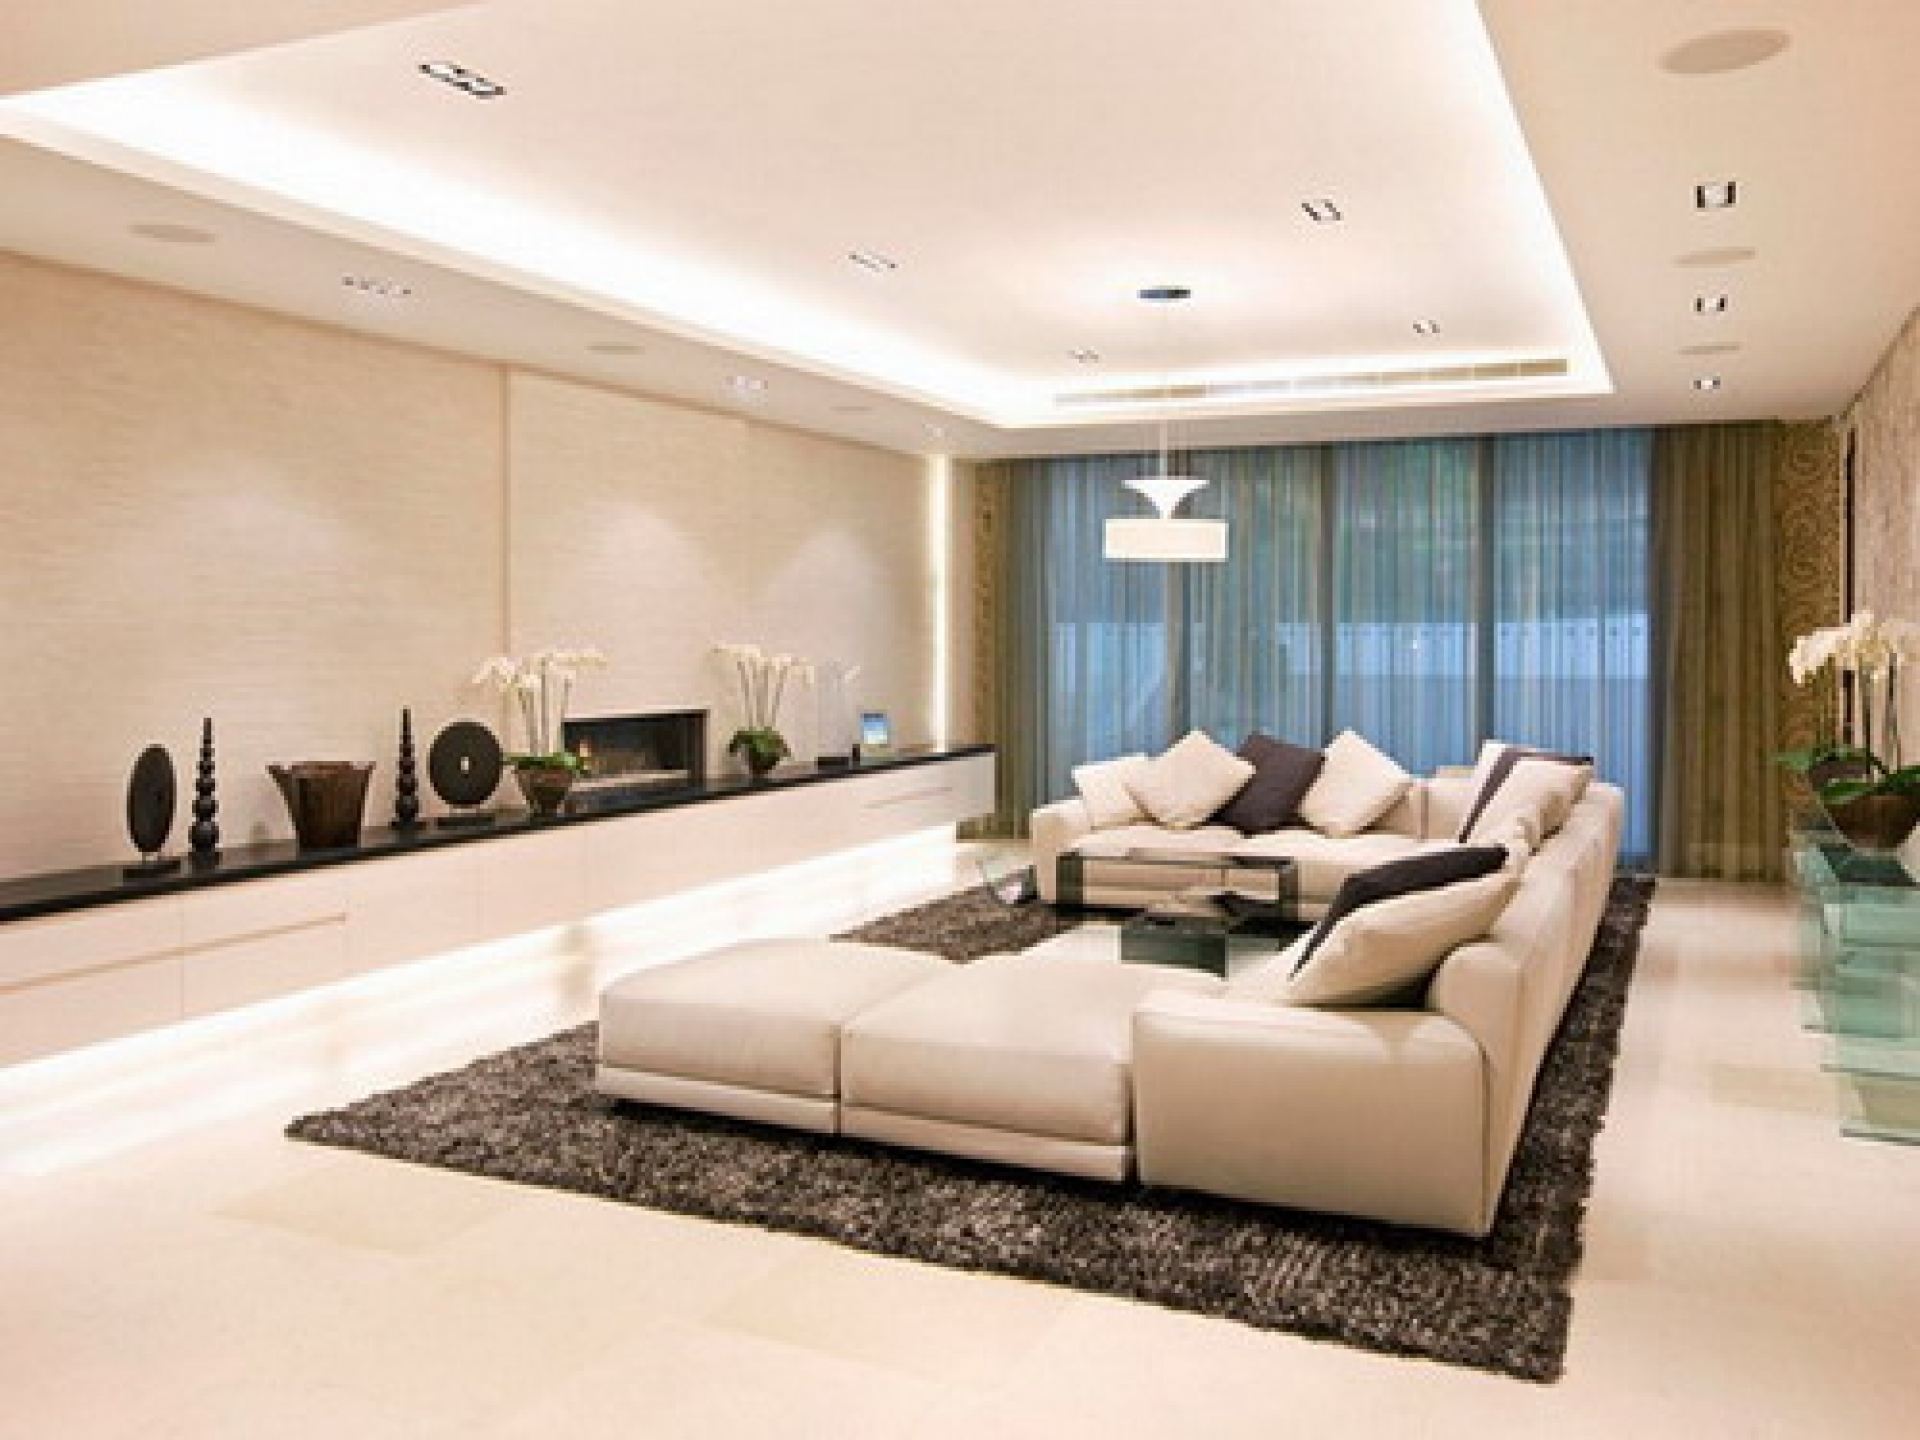 living room ceiling lights modern ceiling lights living room photo - 3 qjdagnu